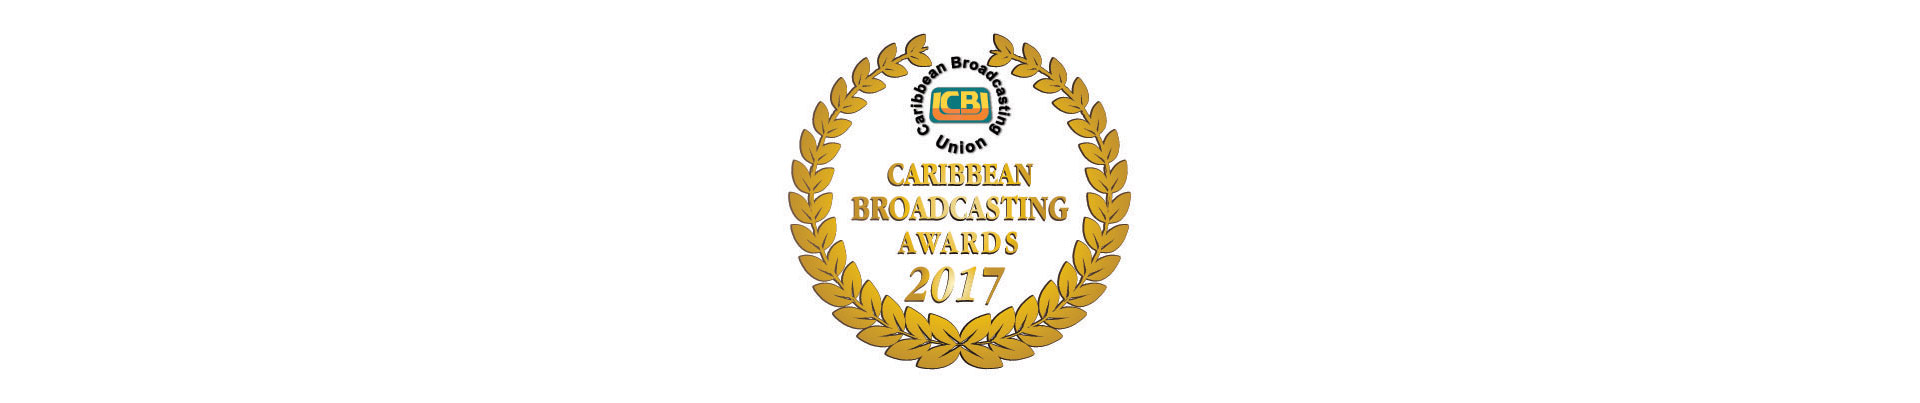 Invitation for Entries – UNICEF Award for Responsible Coverage of Children – CBU Caribbean Broadcasting Awards 2017